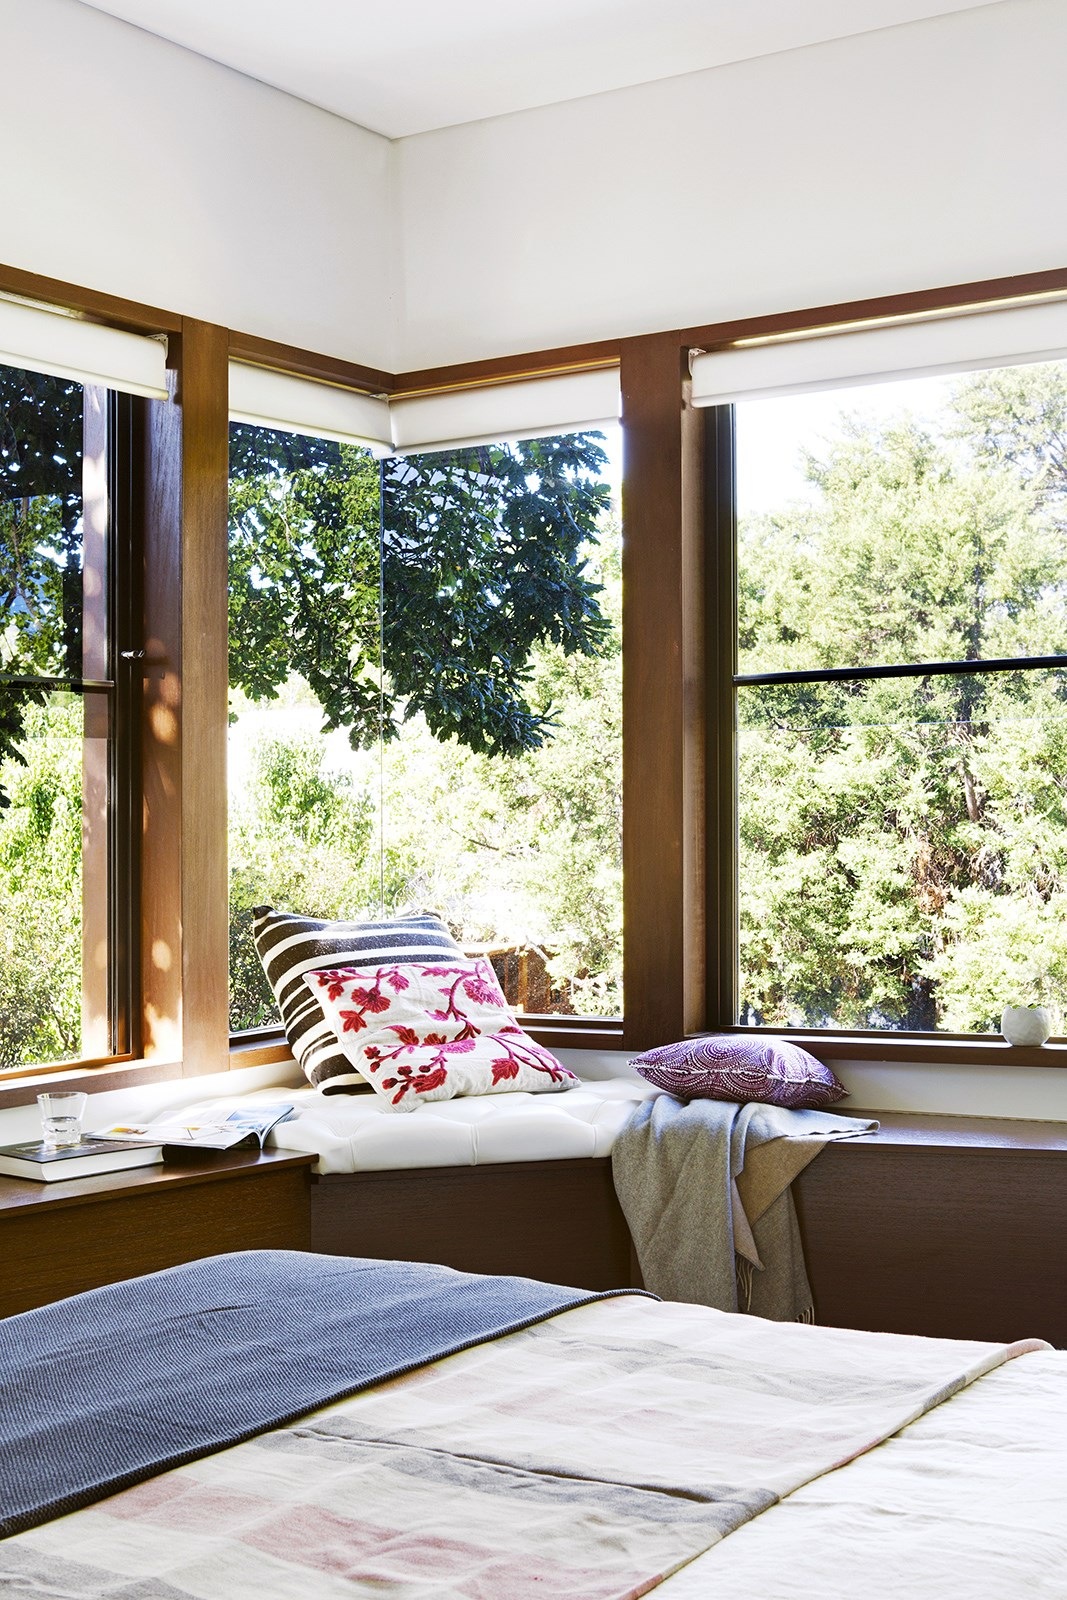 """It's not all about the living areas when it comes to keeping cool in summer - we all know how hard it is to get to sleep in a room that's too hot. A modern extension to a 1930s bungalow created a bedroom in the trees for the owners of this Perth home. The oak tree's canopy and motorised blinds shade the house in summer so air conditioning is rarely needed. [Take the tour](http://www.homestolove.com.au/gallery-modern-extension-to-a-1930s-bungalow-2398